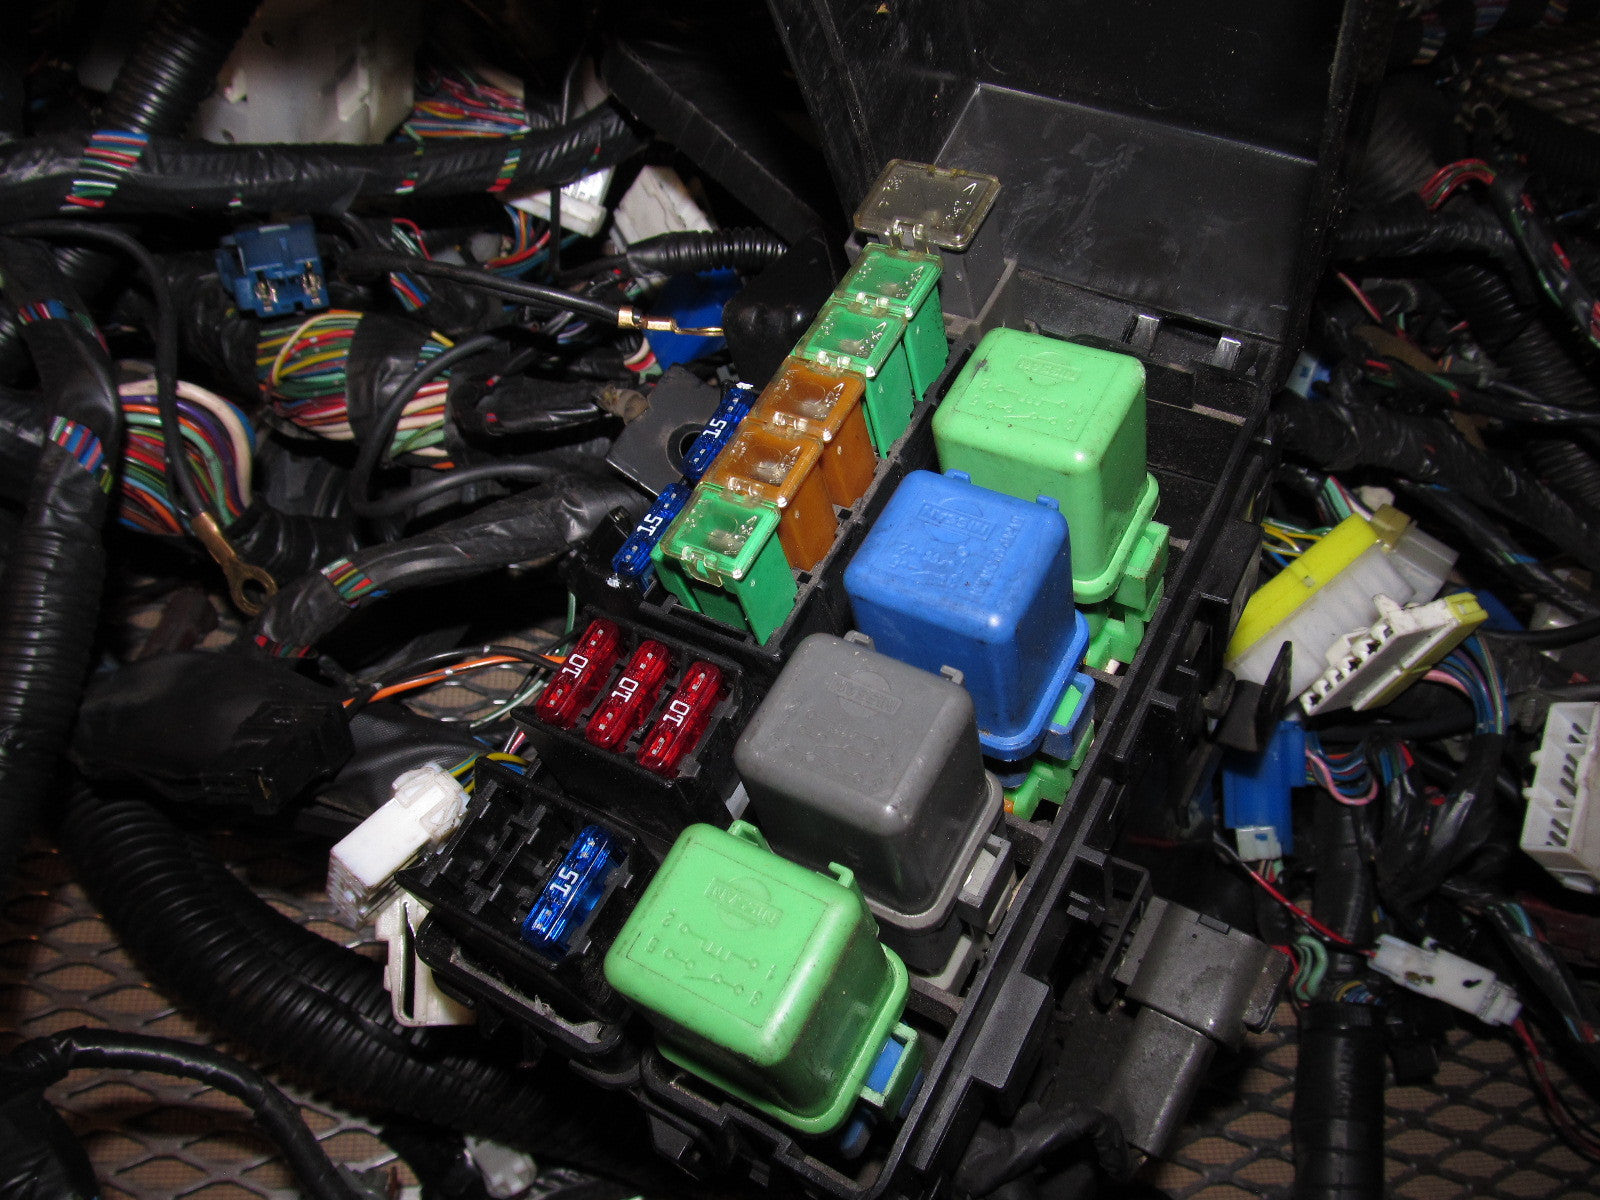 91 Nissan 300zx Wiring Diagram Sx Image 1991 240sx Fuse Box Jodebal Com On 1992